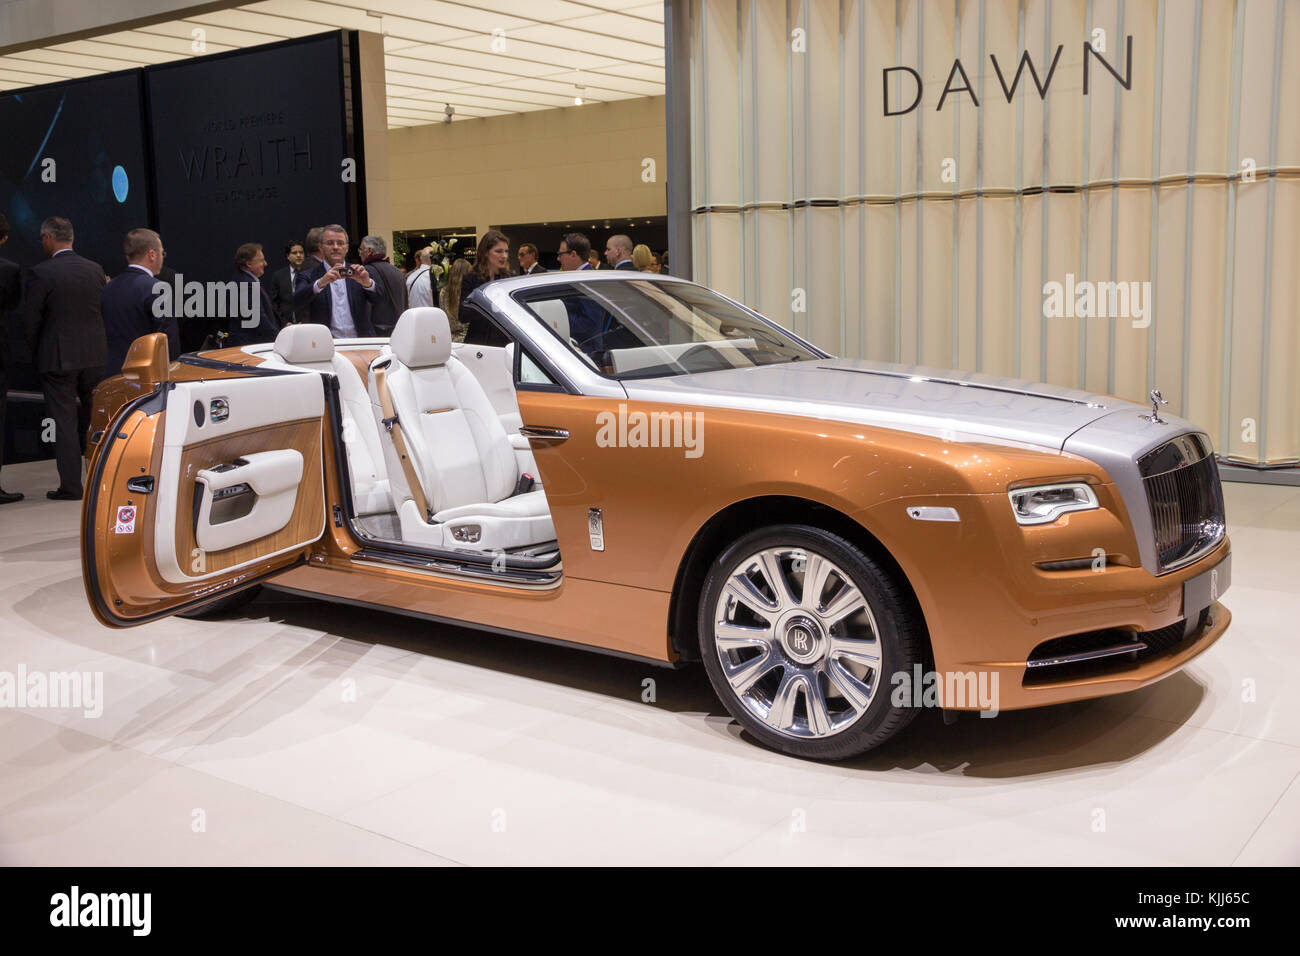 GENEVA, SWITZERLAND - MARCH 1, 2016: Rolls Royce Dawn luxury convertible car showcased at the 86th Geneva International - Stock Image